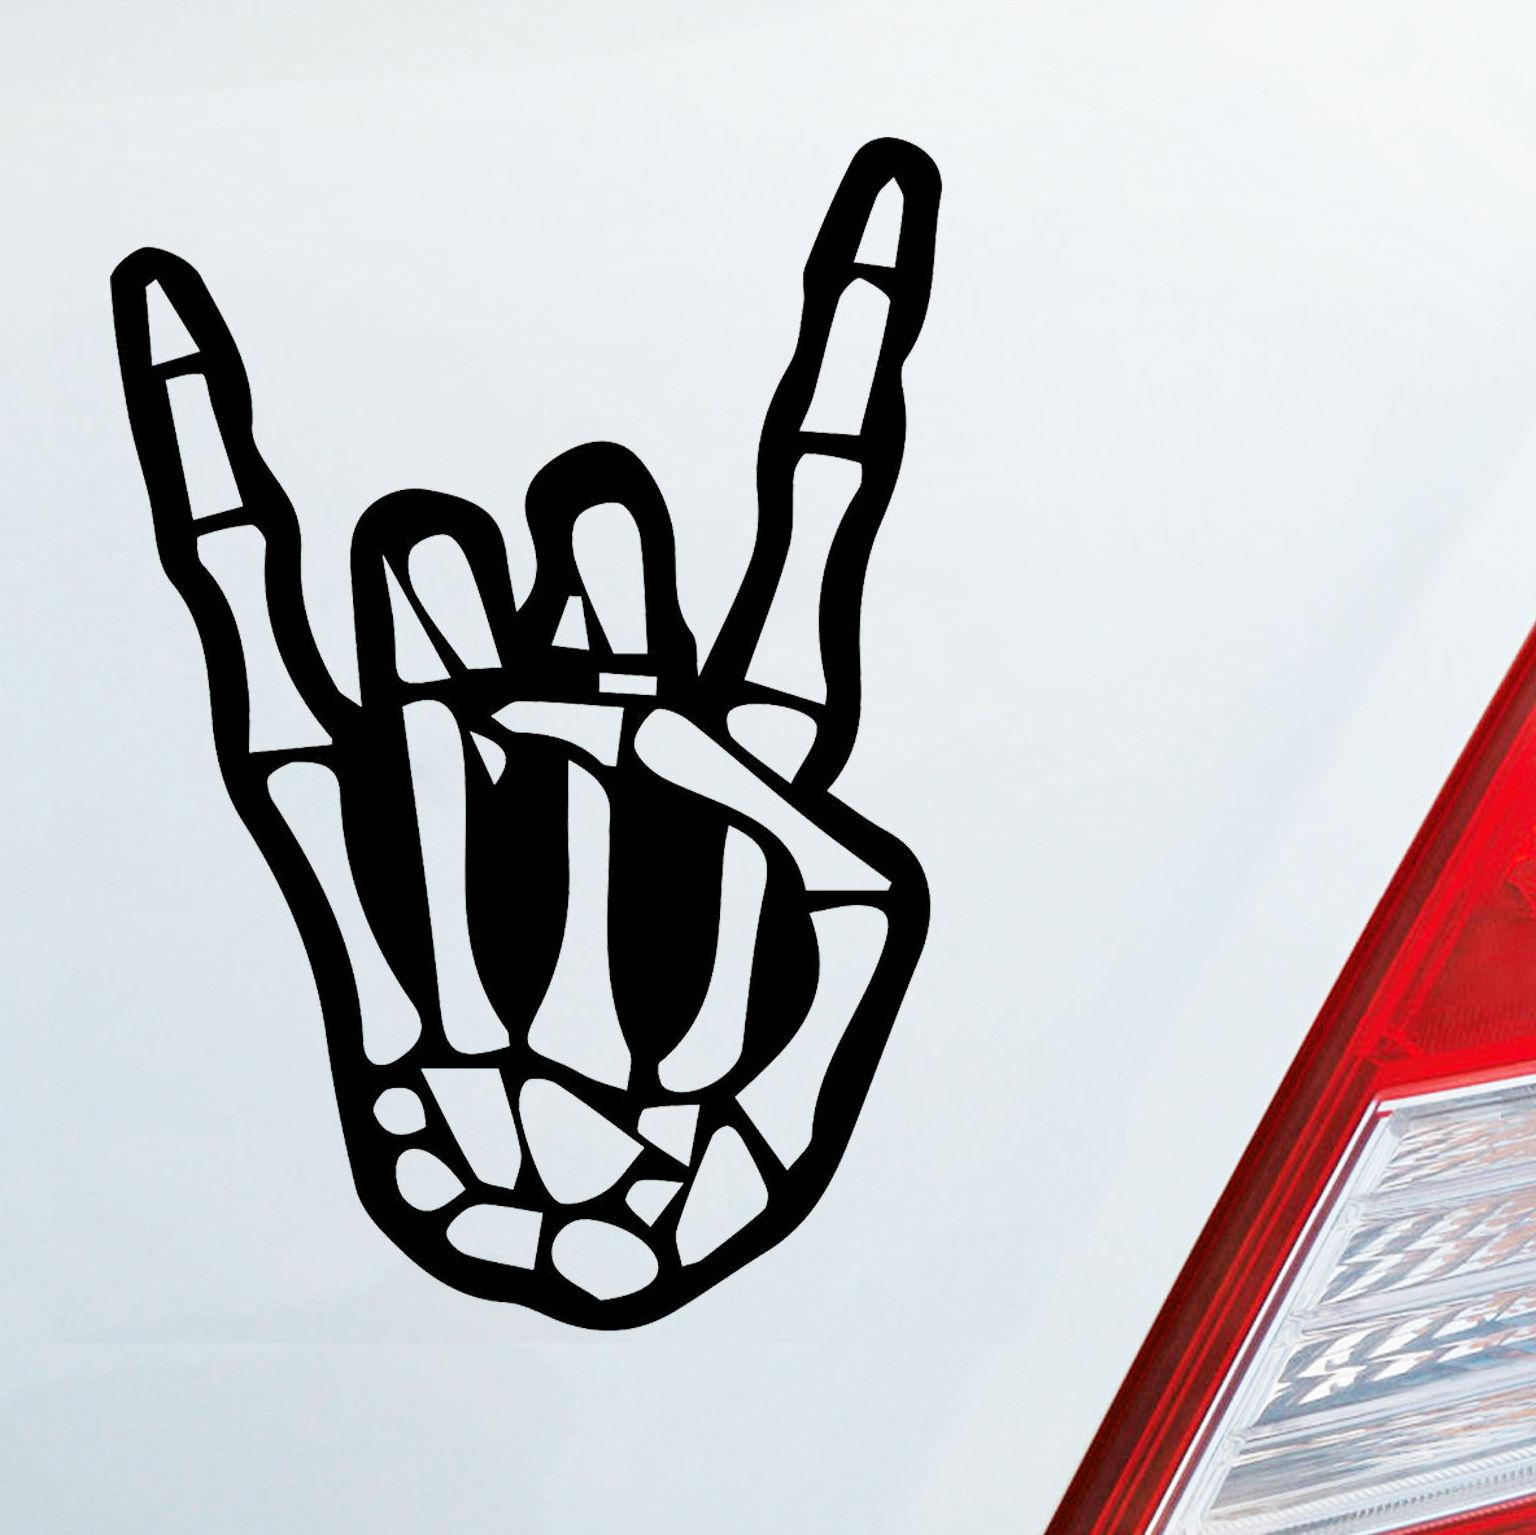 2019 1510cm autoaufkleber skelett heavy metal aufkleber sticker rock cool graphics car accessories vinyl decals from xymy777 3 42 dhgate com